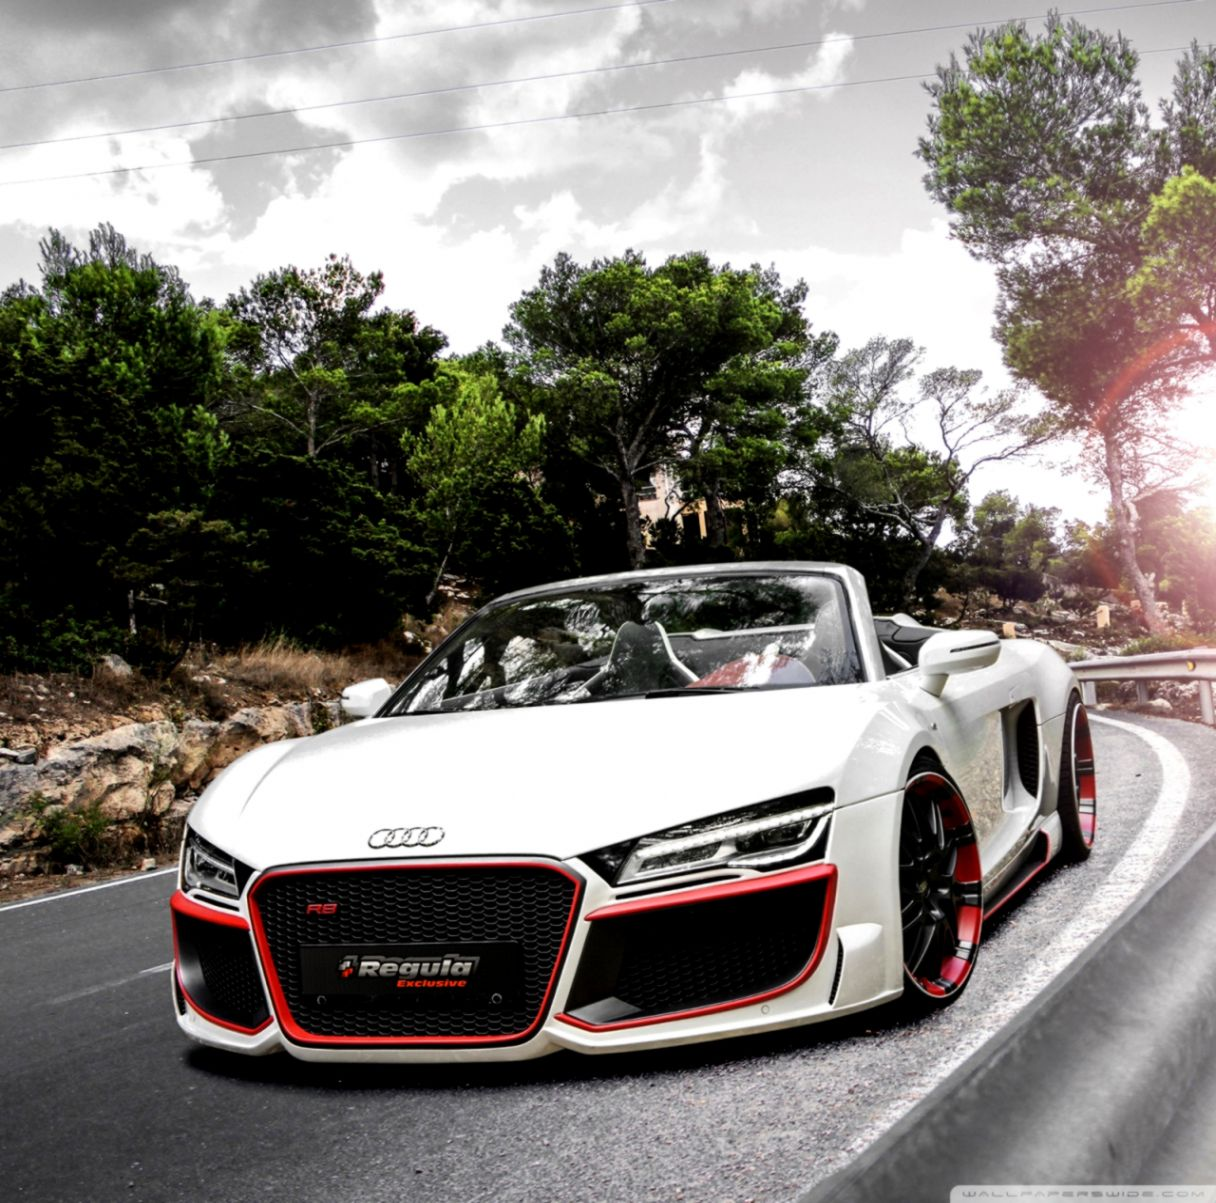 Audi Wallpaper: Audi R8 V10 Car 5 HD Wide Wallpaper For Widescreen (95